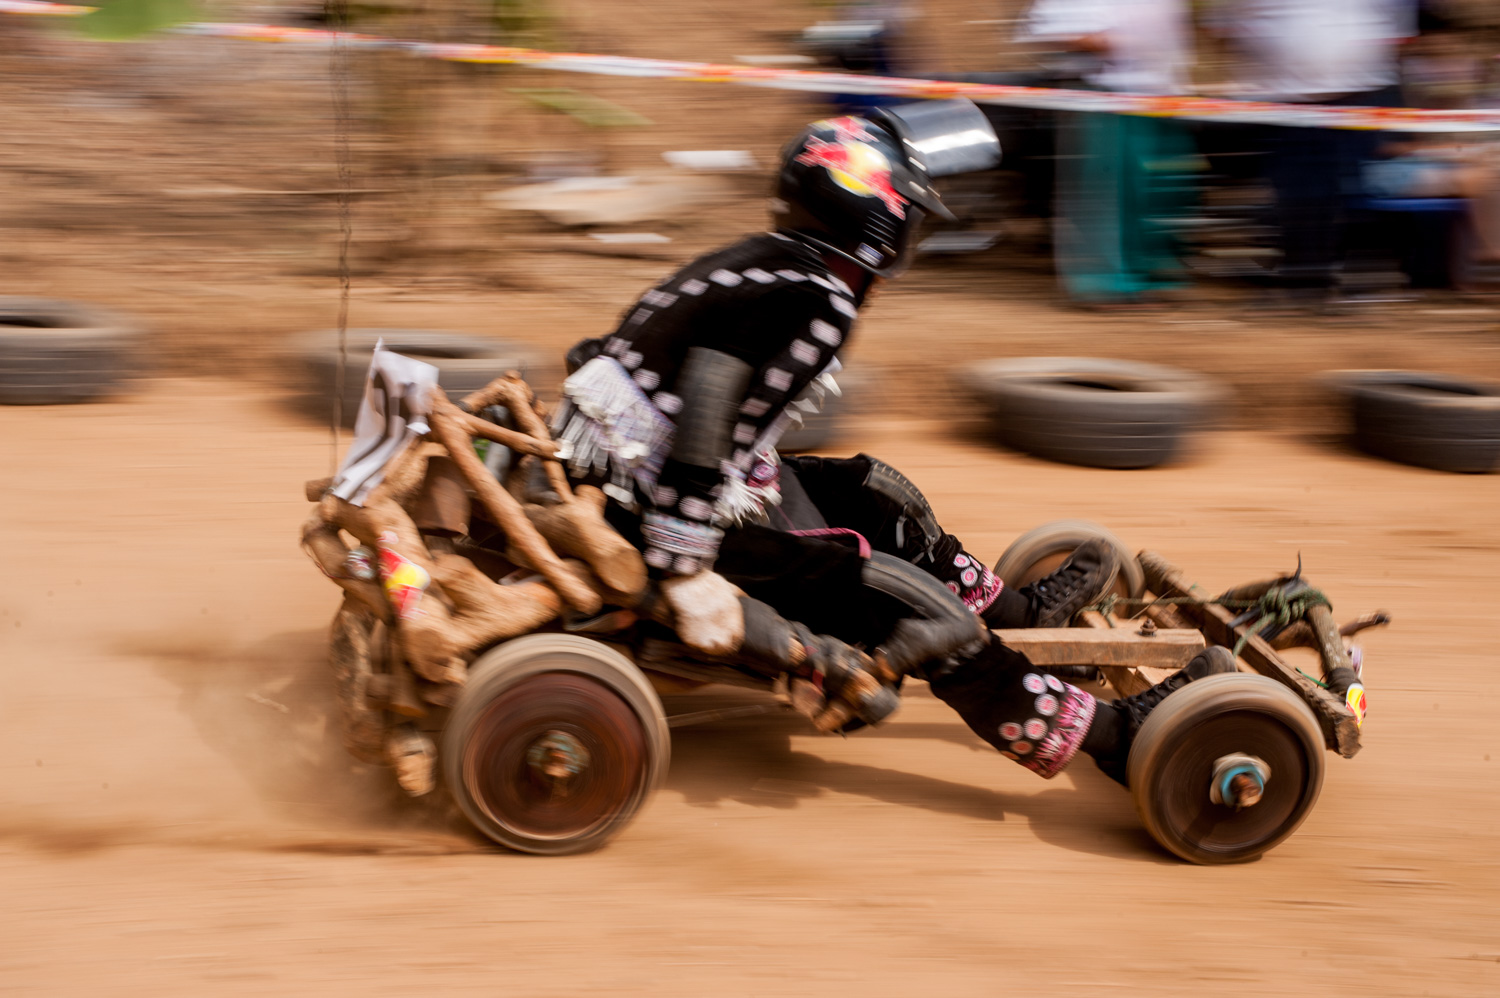 Hmong New Year kart racing - Action Photos